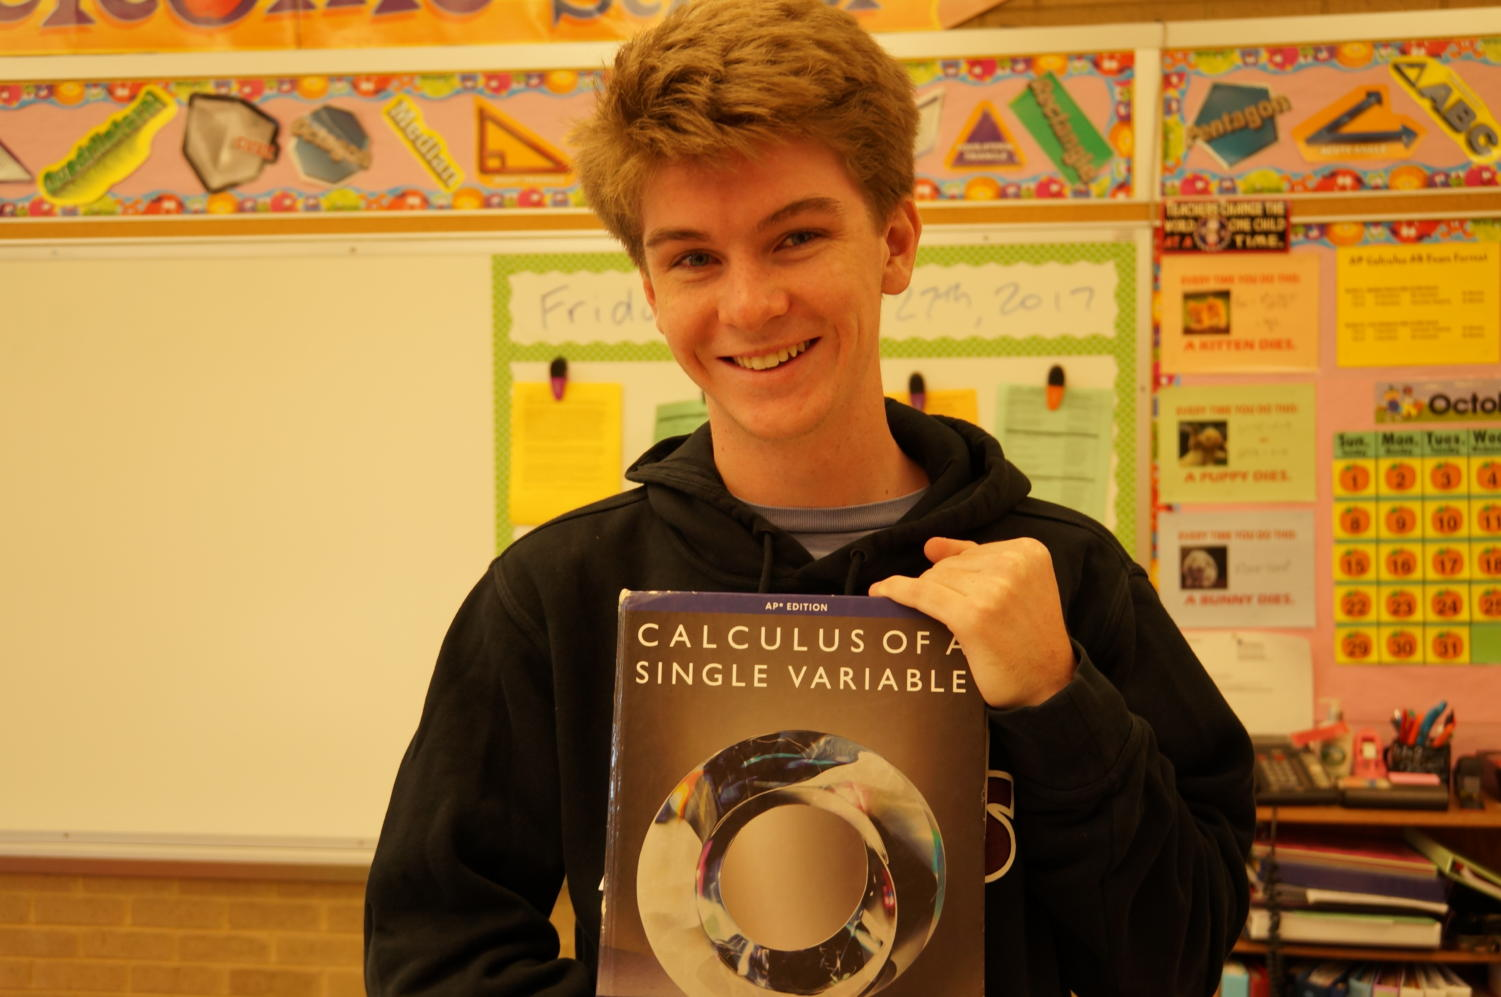 Thomas Newton with his beloved AP Calculus book.